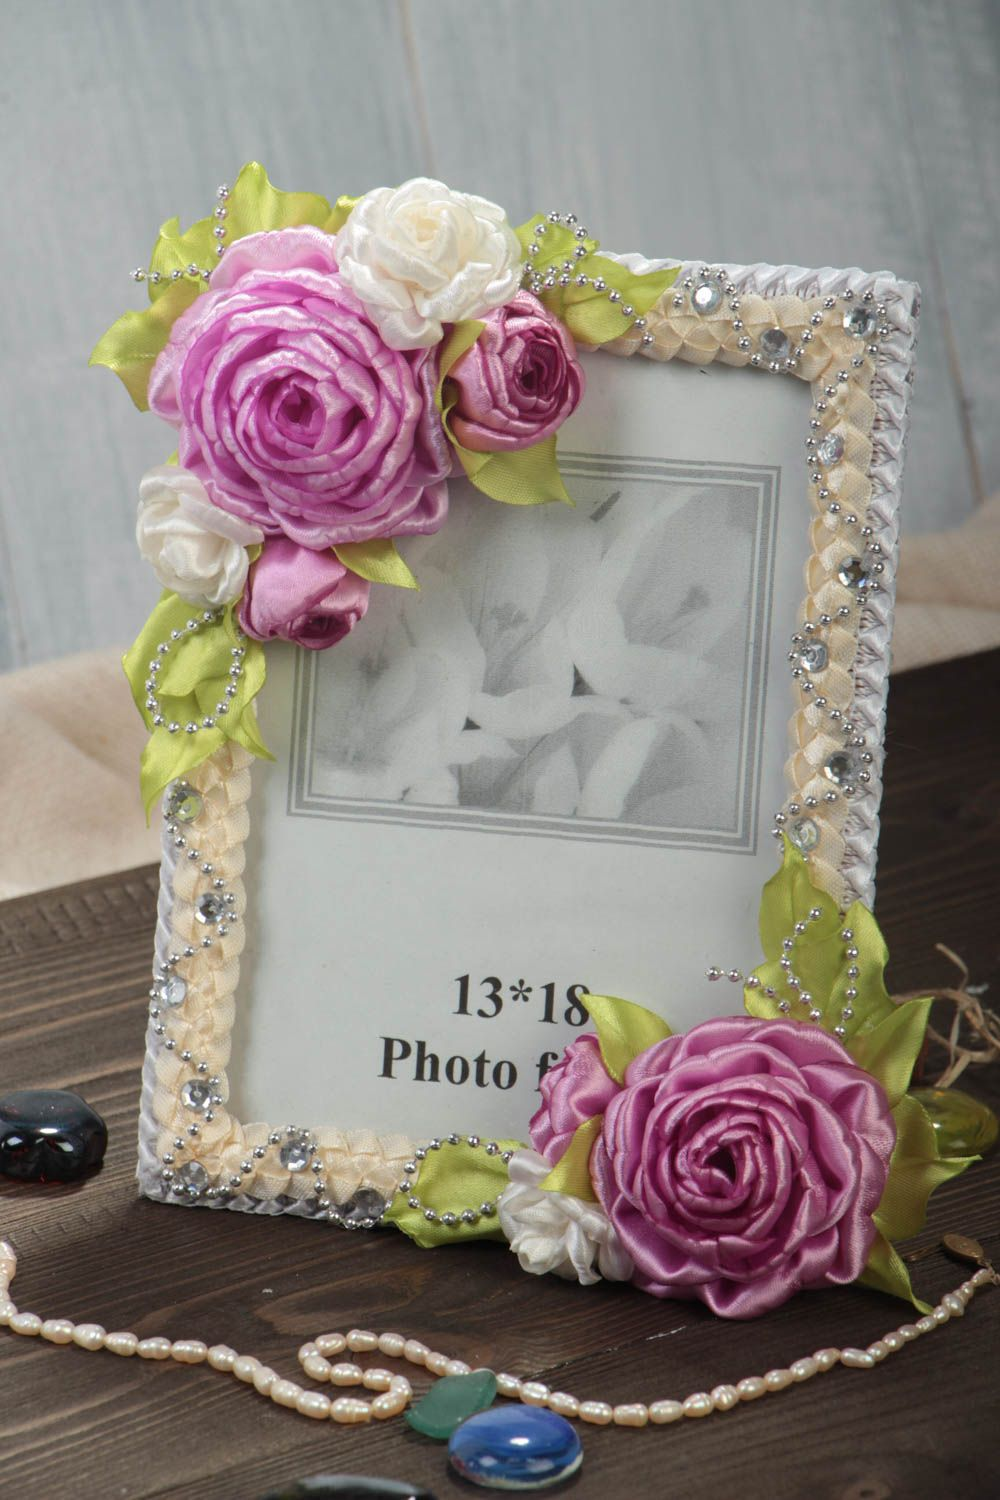 Handmade wooden photo frame with textile flowers interior decorating gift ideas photo 1